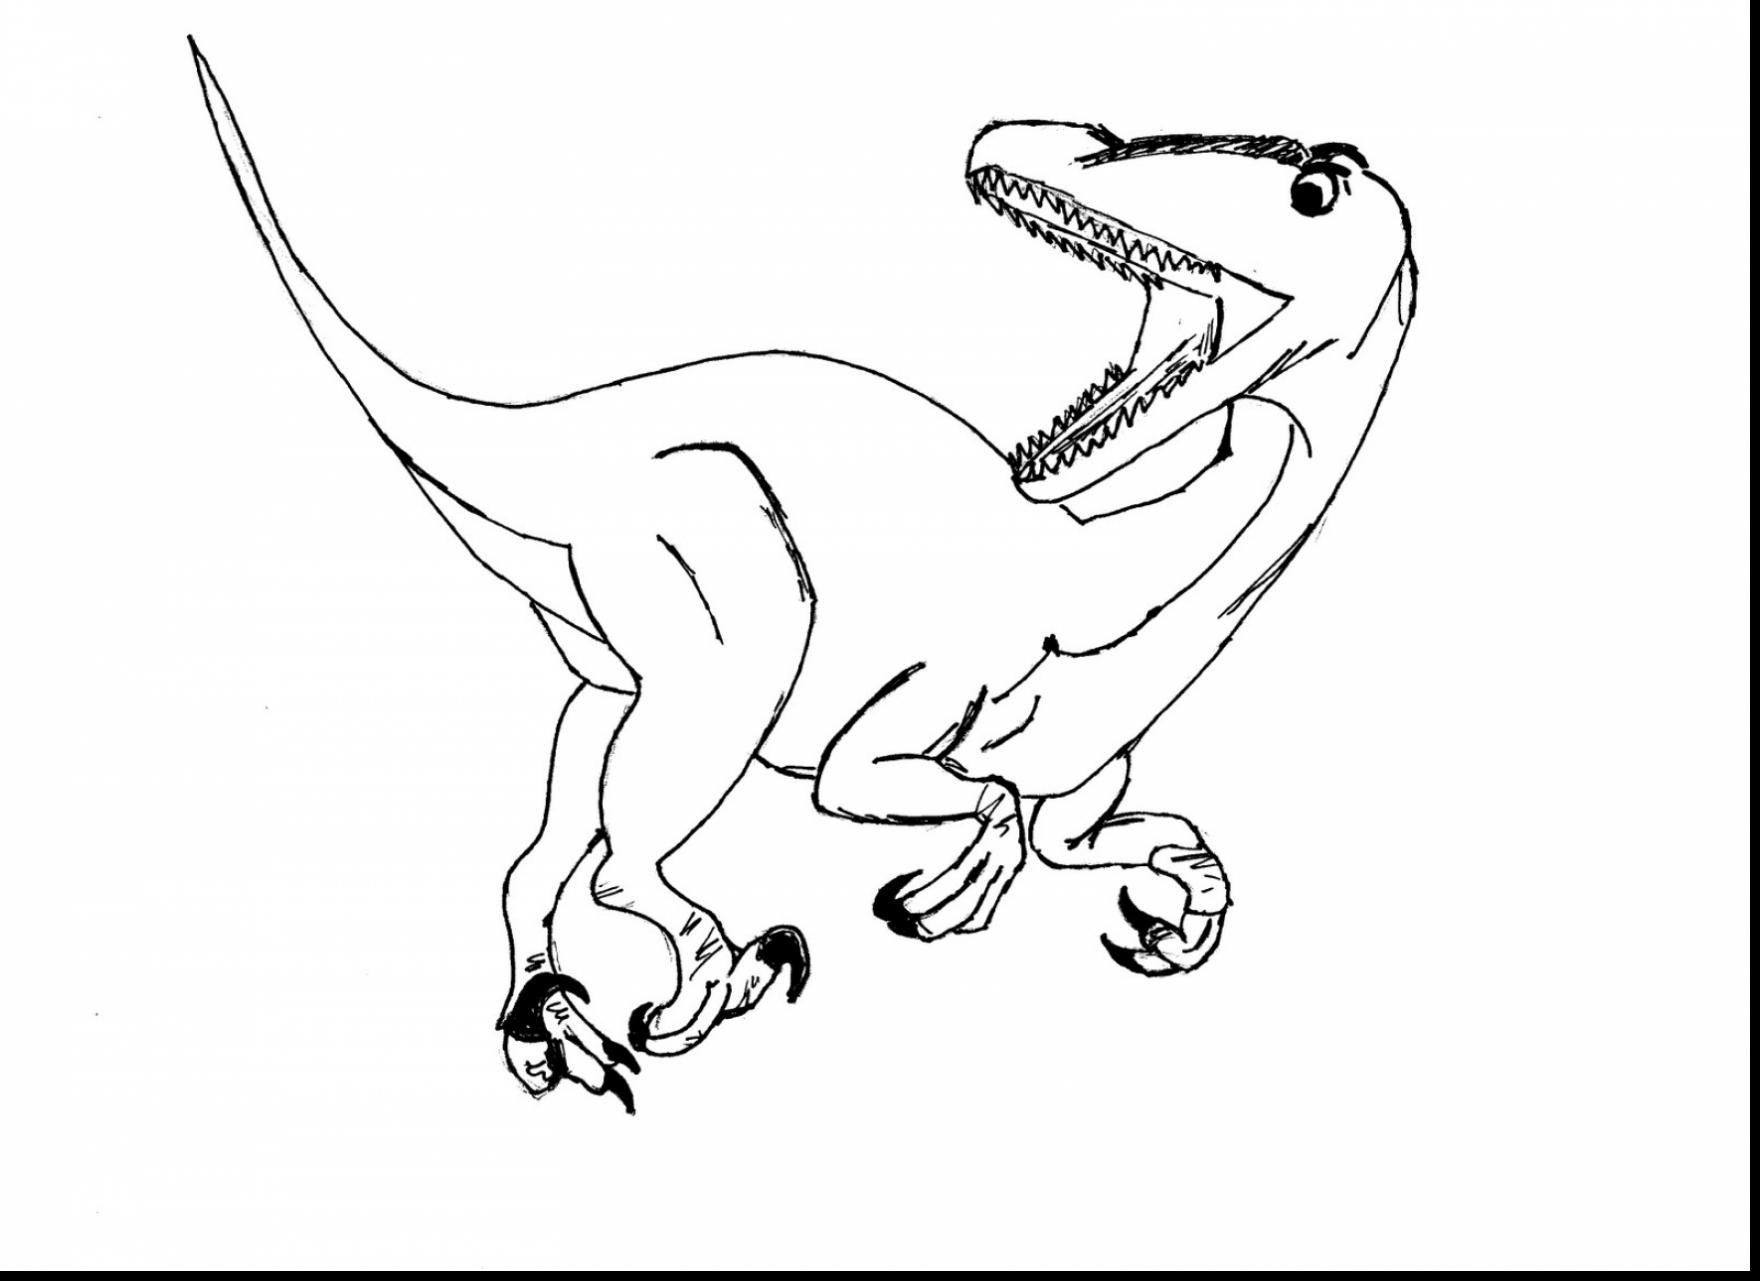 Velociraptor Coloring Pages - GetColoringPages.com | 1281x1760